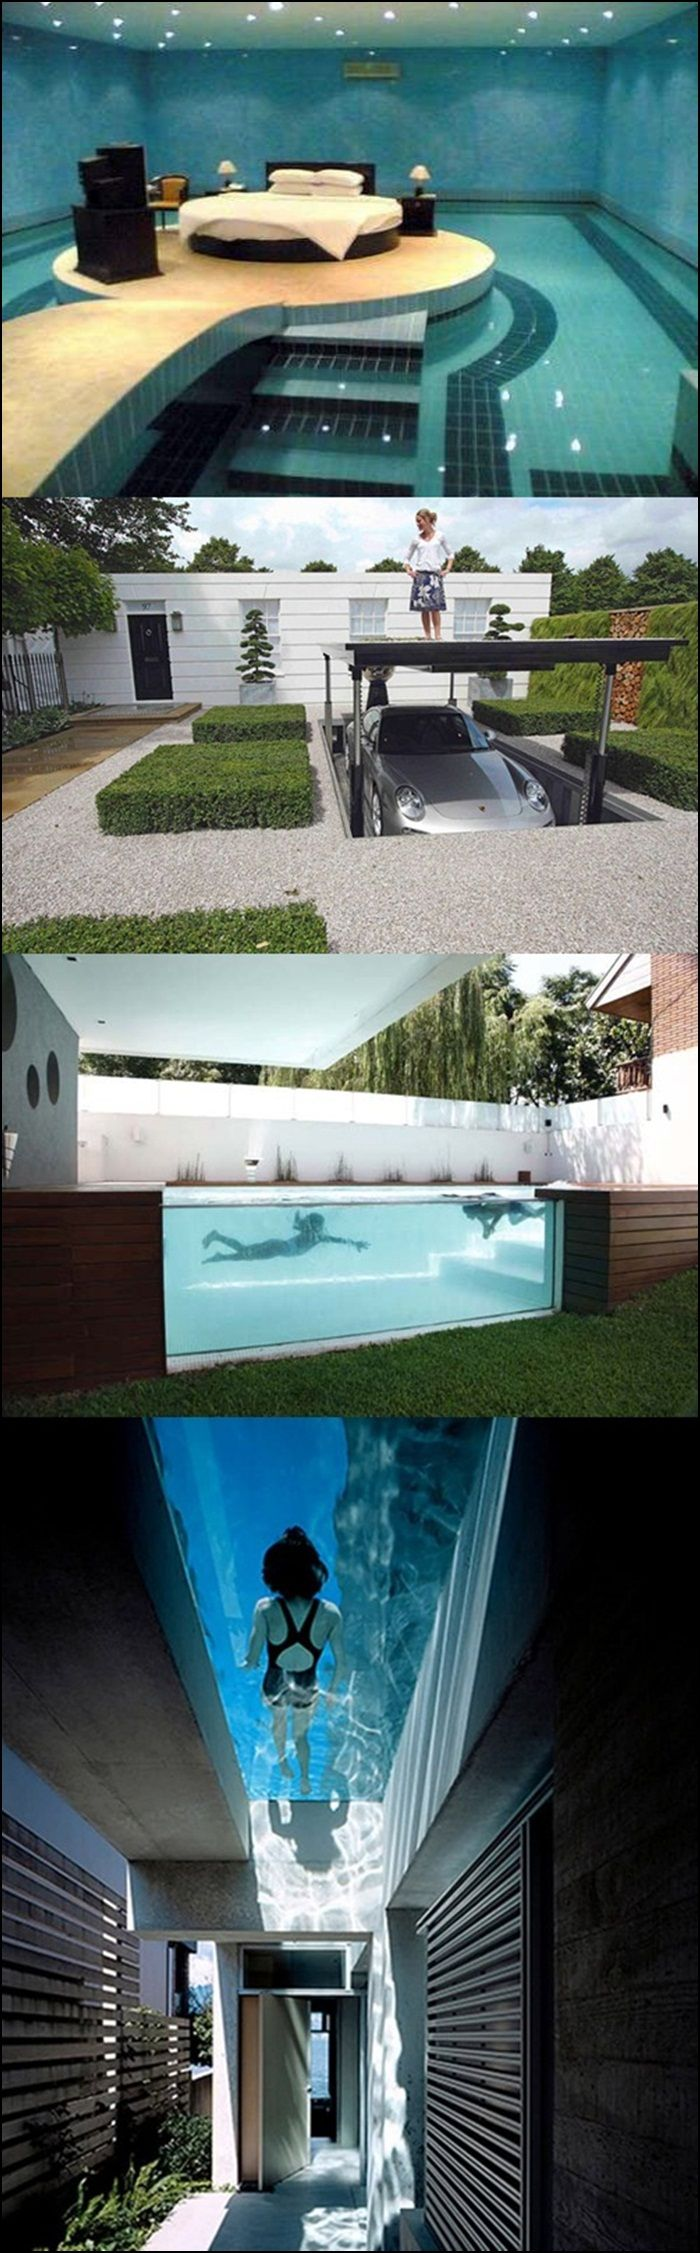 Best 25+ Cool houses ideas on Pinterest | Cool homes, Cool house ...